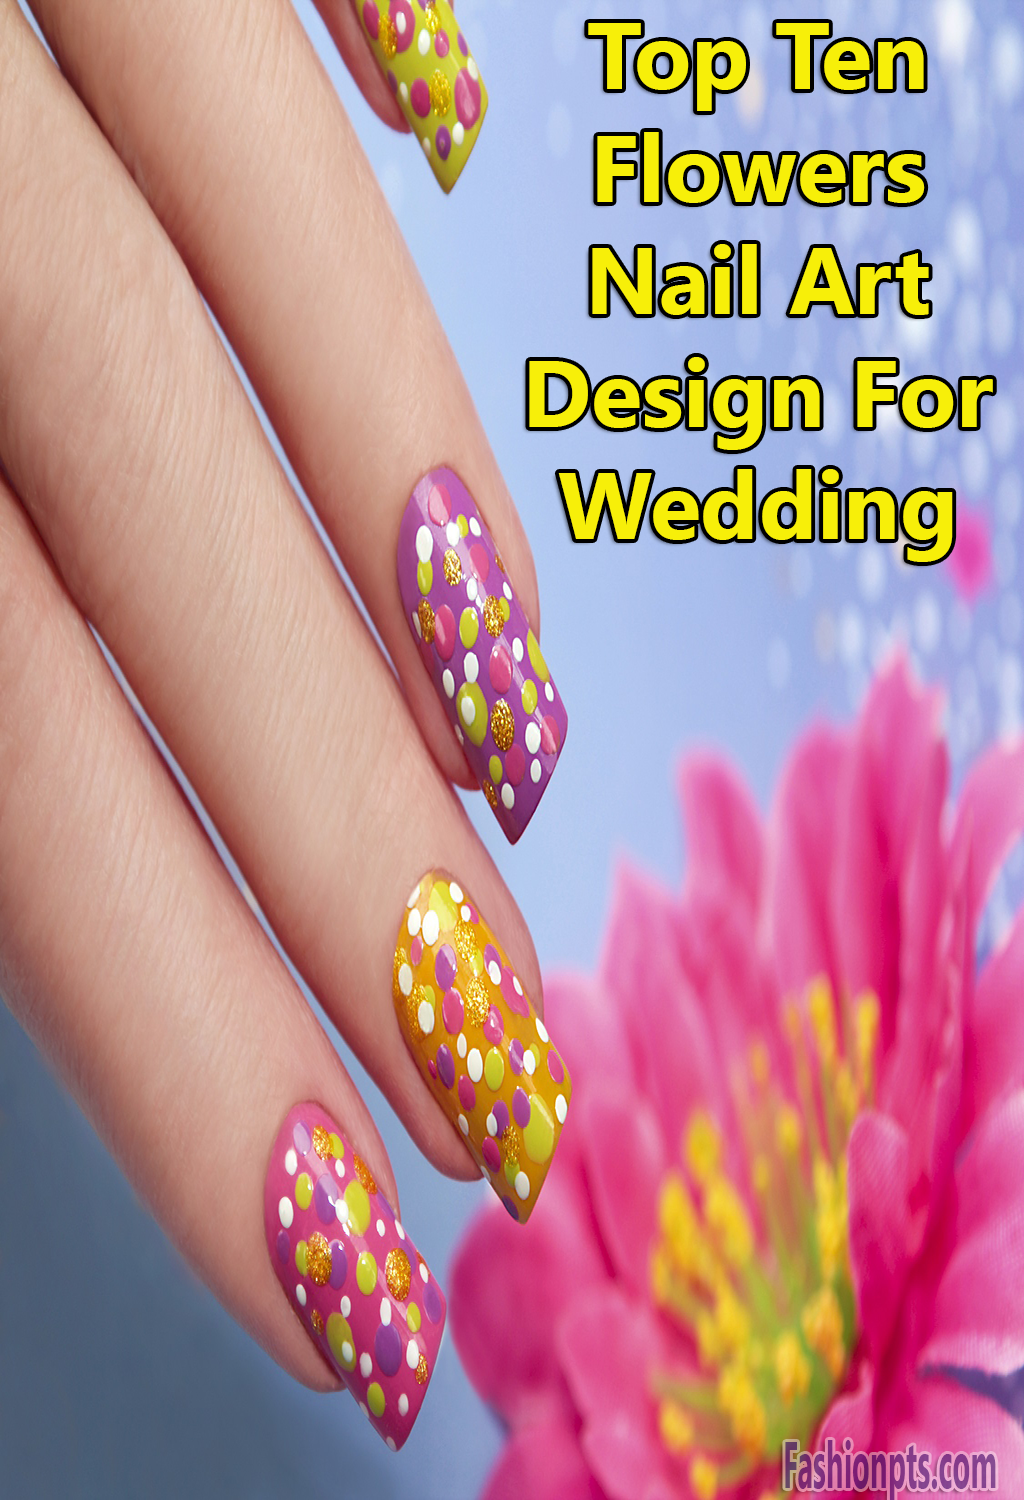 Top 10 Flowers Nail Art Design Specially For Wedding #BeautyofNail ...